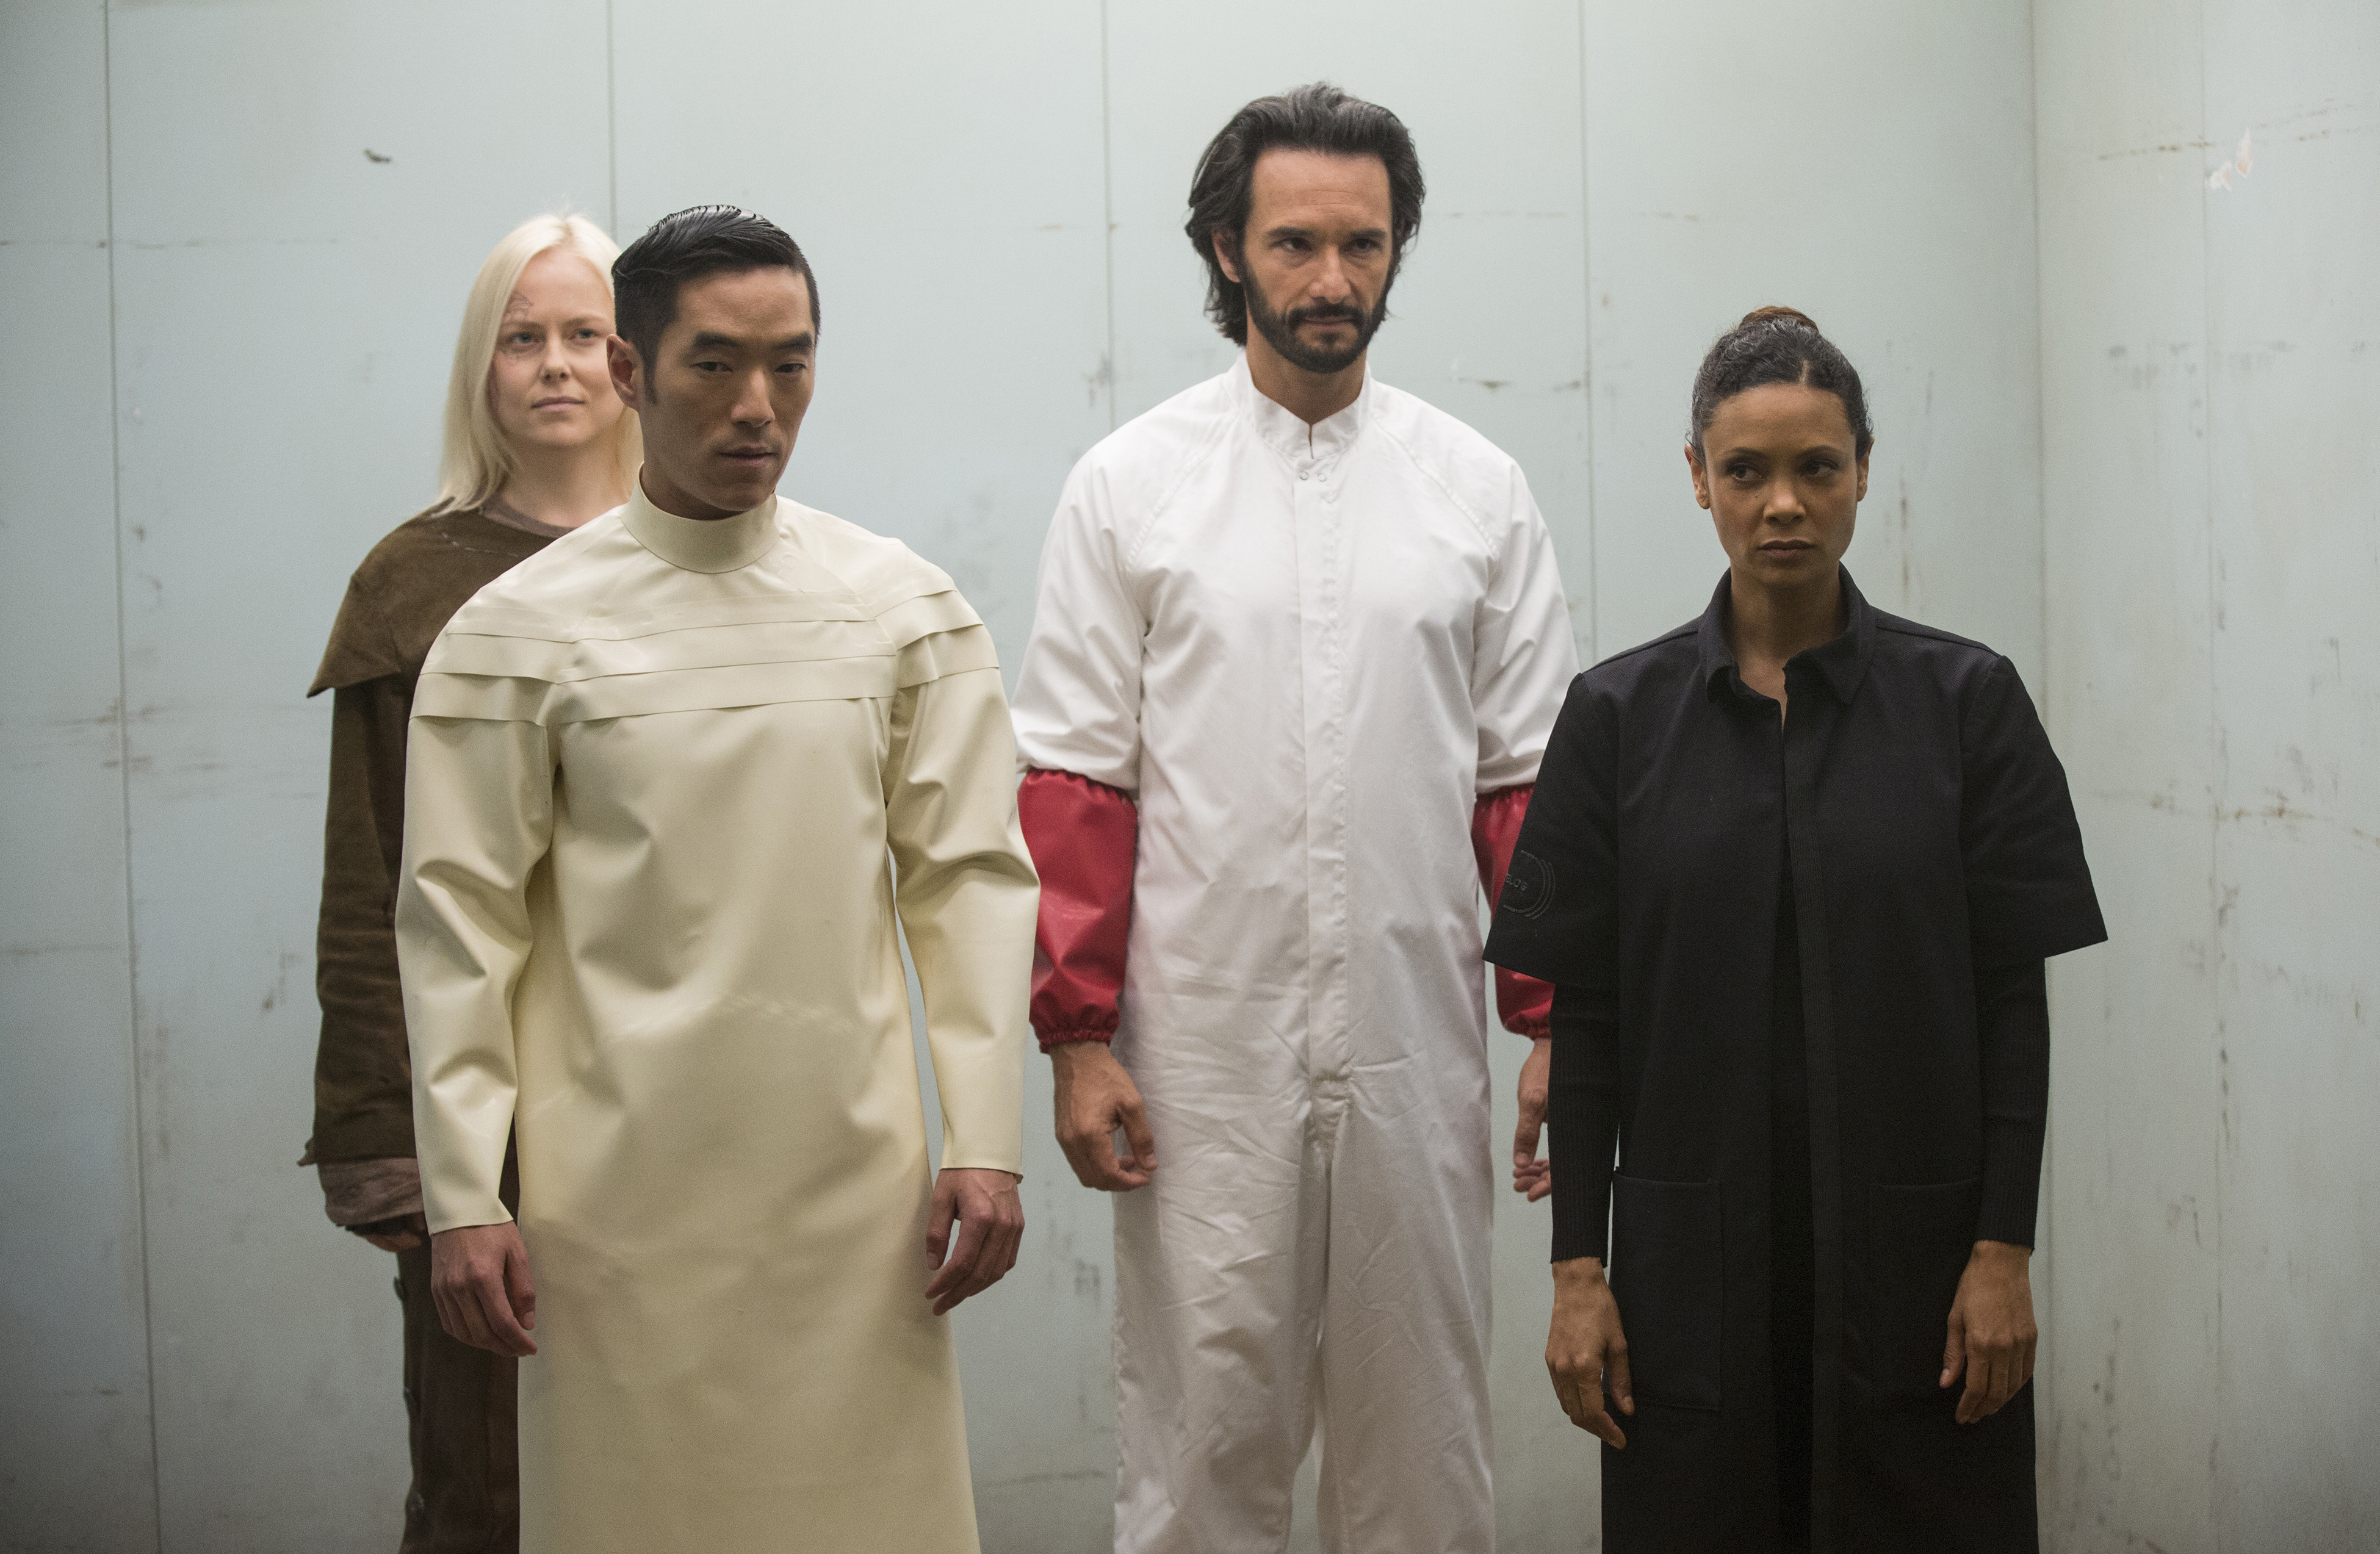 Thandie Newton, Rodrigo Santoro, Leonardo Nam, and Ingrid Bolsø Berdal in Westworld (2016)